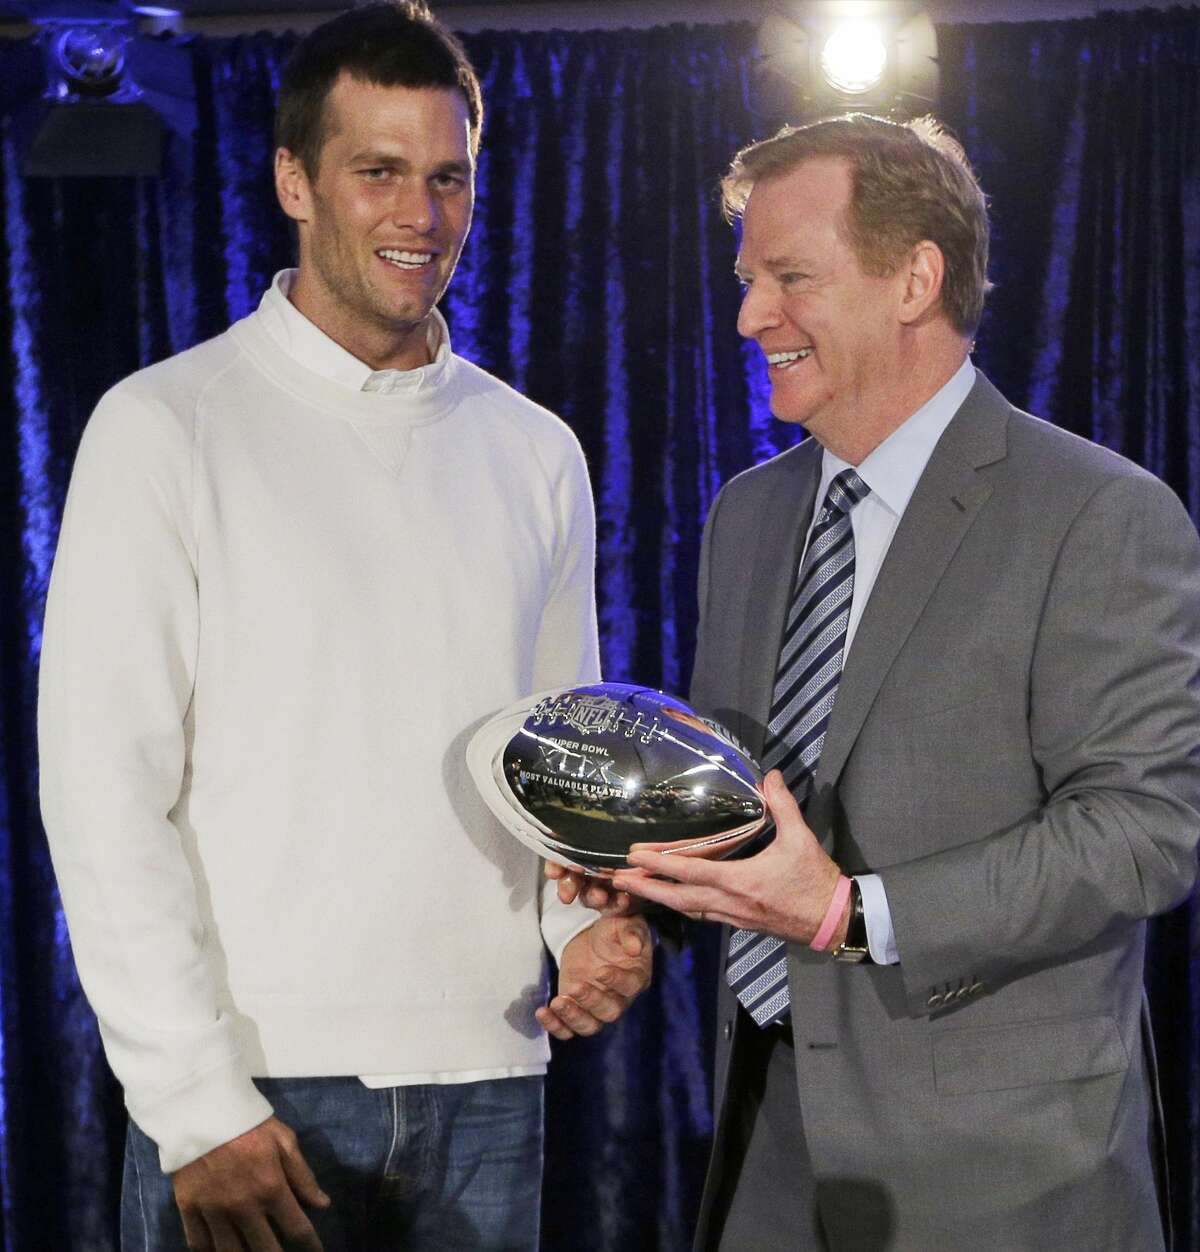 In this Feb. 2 file photo, New England Patriots quarterback Tom Brady poses with NFL Commissioner Rodger Goodell during a news conference after Super Bowl XLIX in Phoenix, Ariz.